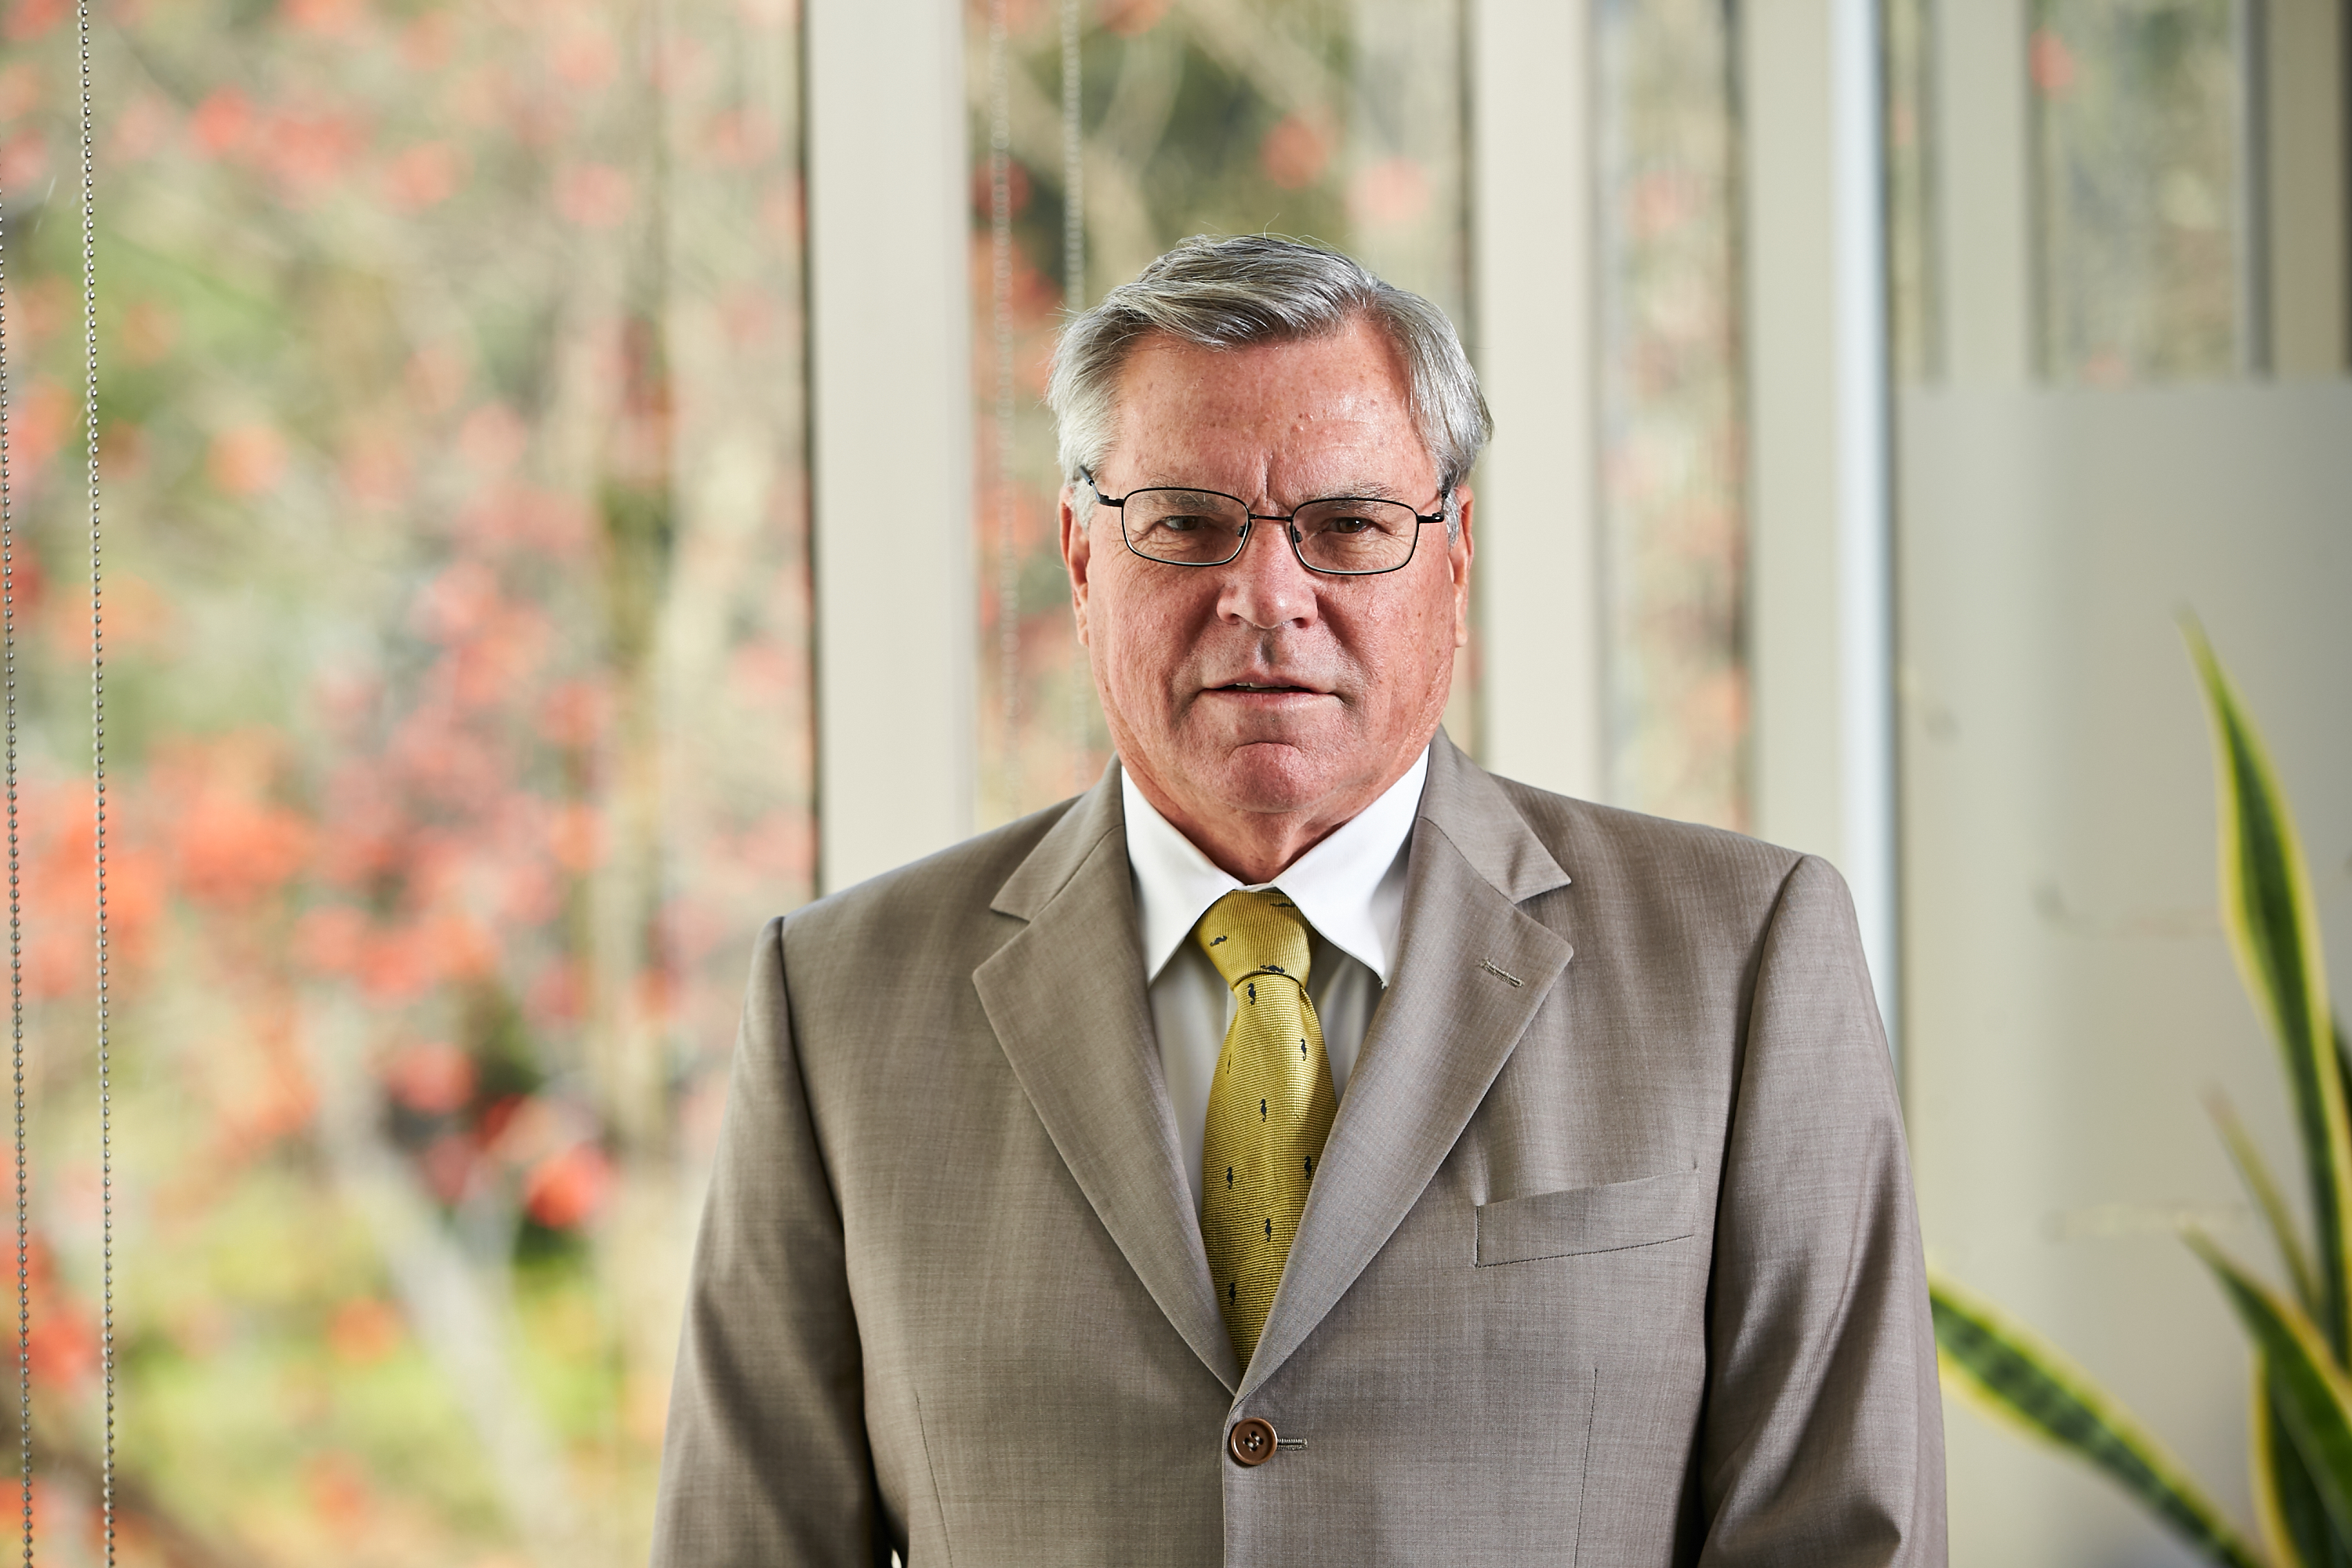 Behind the scenes with Carnarvon's new Chairman